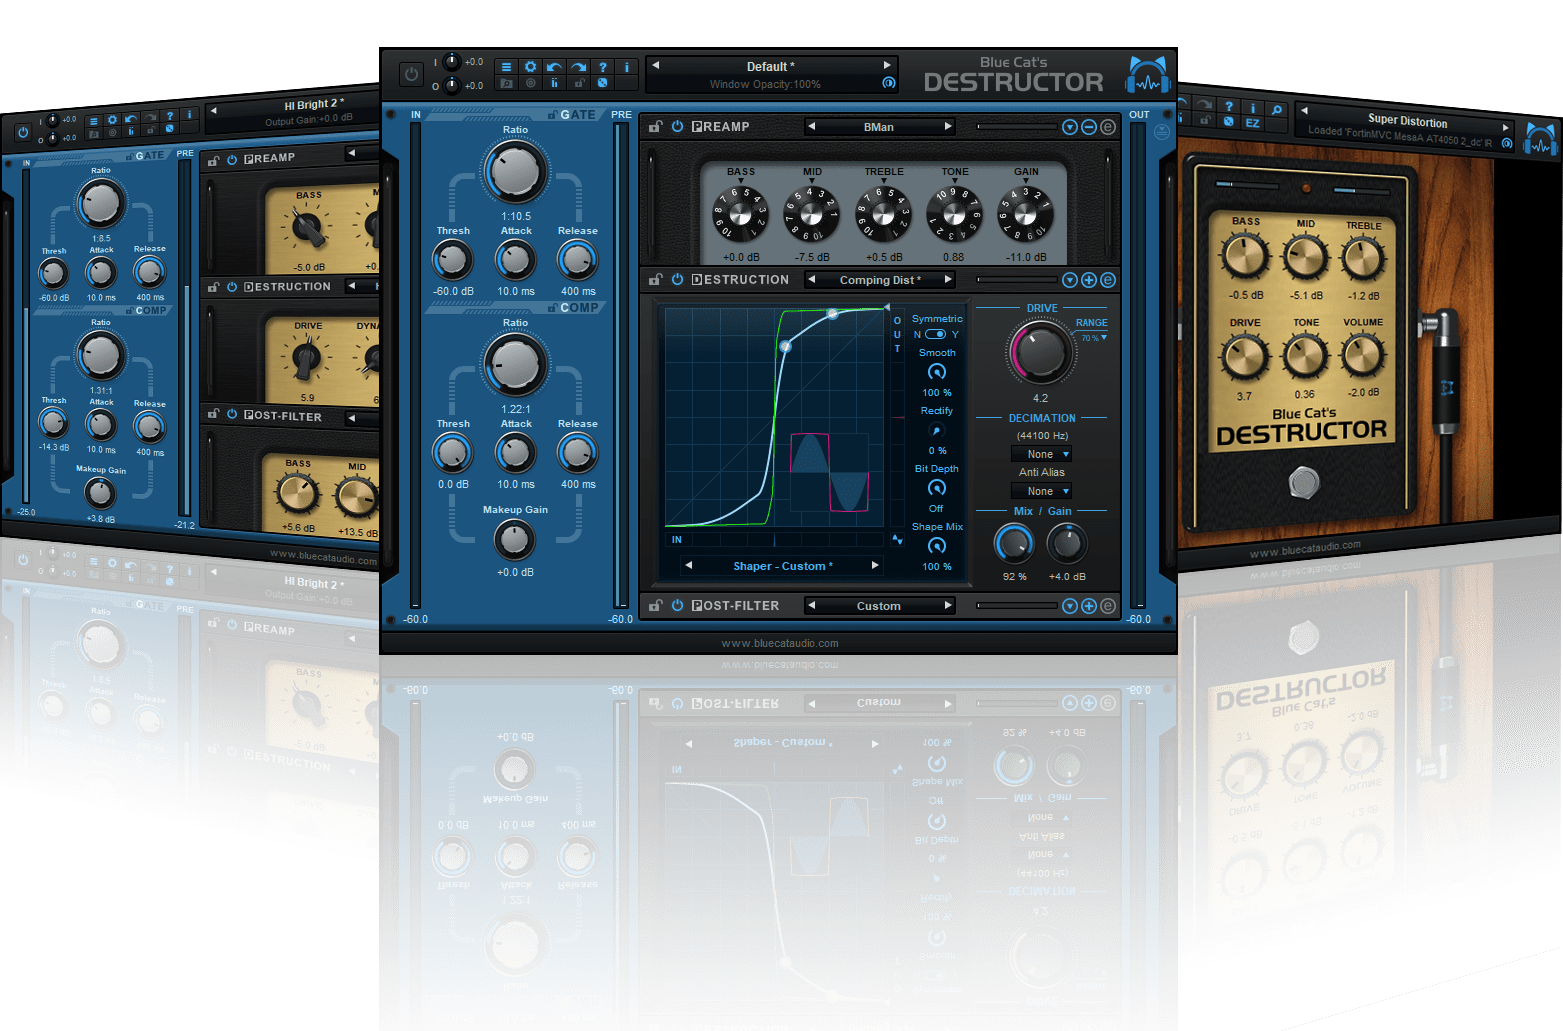 Blue Cat's Destructor - Distortion and Amp Simulation Plug-In (VST, AU, AAX, VST3)